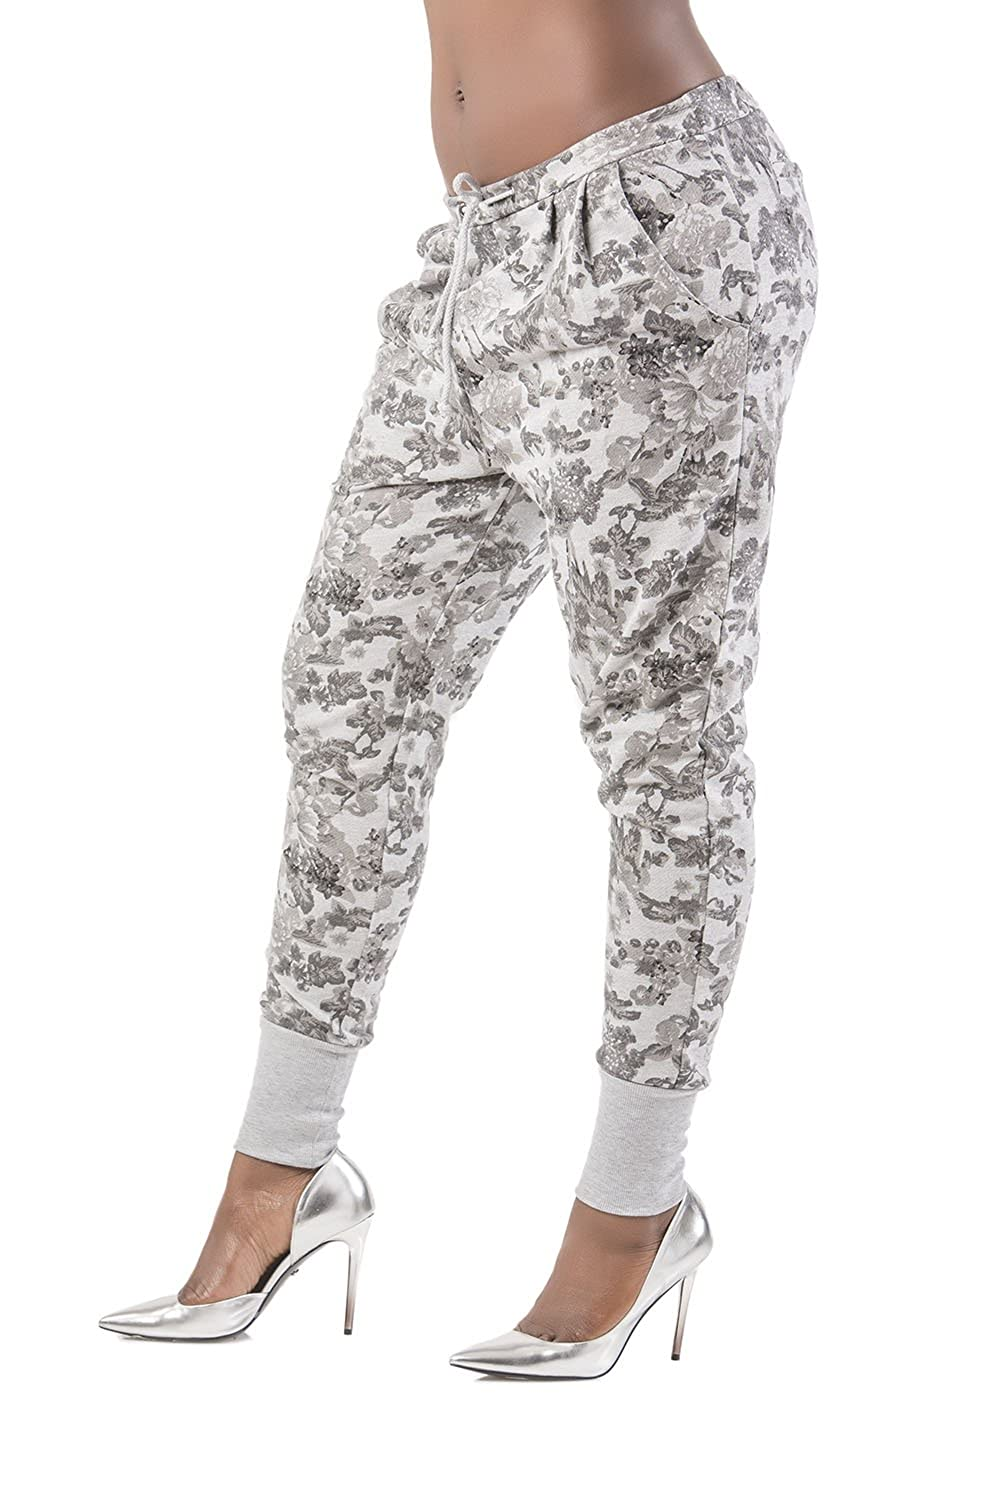 Poetic Justice Curvy Womens Floral Printed Heather Grey French Terry Jogger Pant